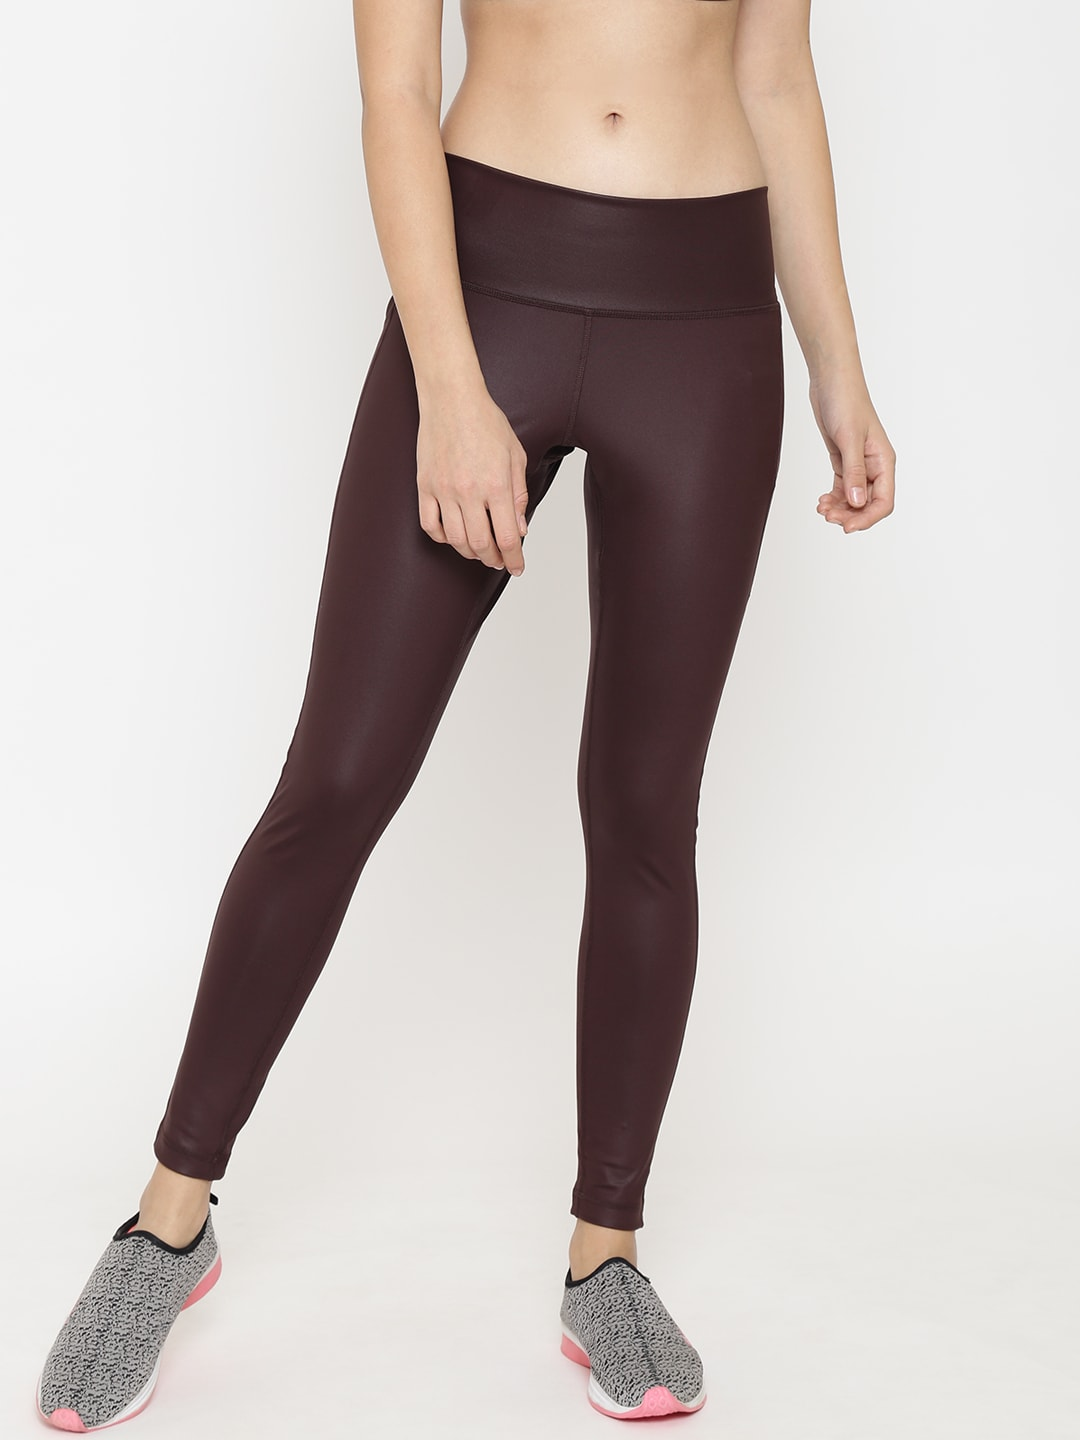 ADIDAS Women Maroon & Beige Printed Believe This High Rise DEF AI Training Tights